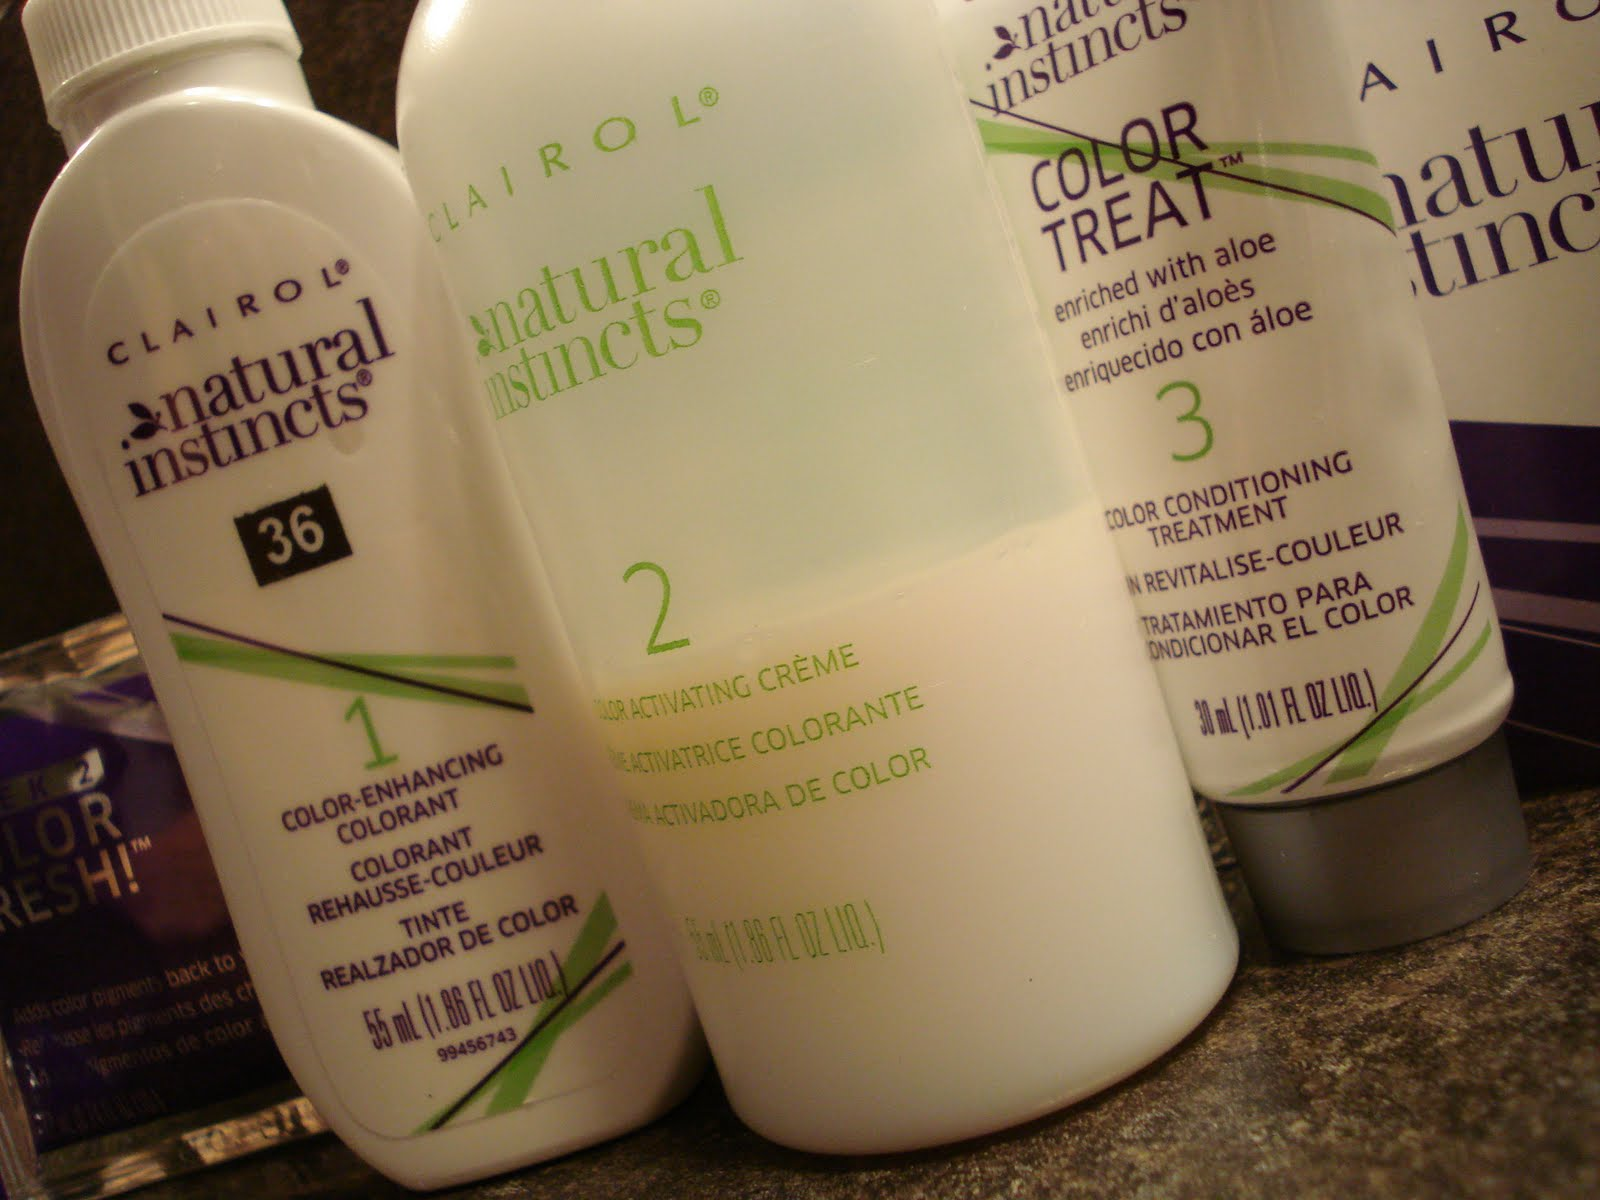 clairol natural instincts color treat conditioner